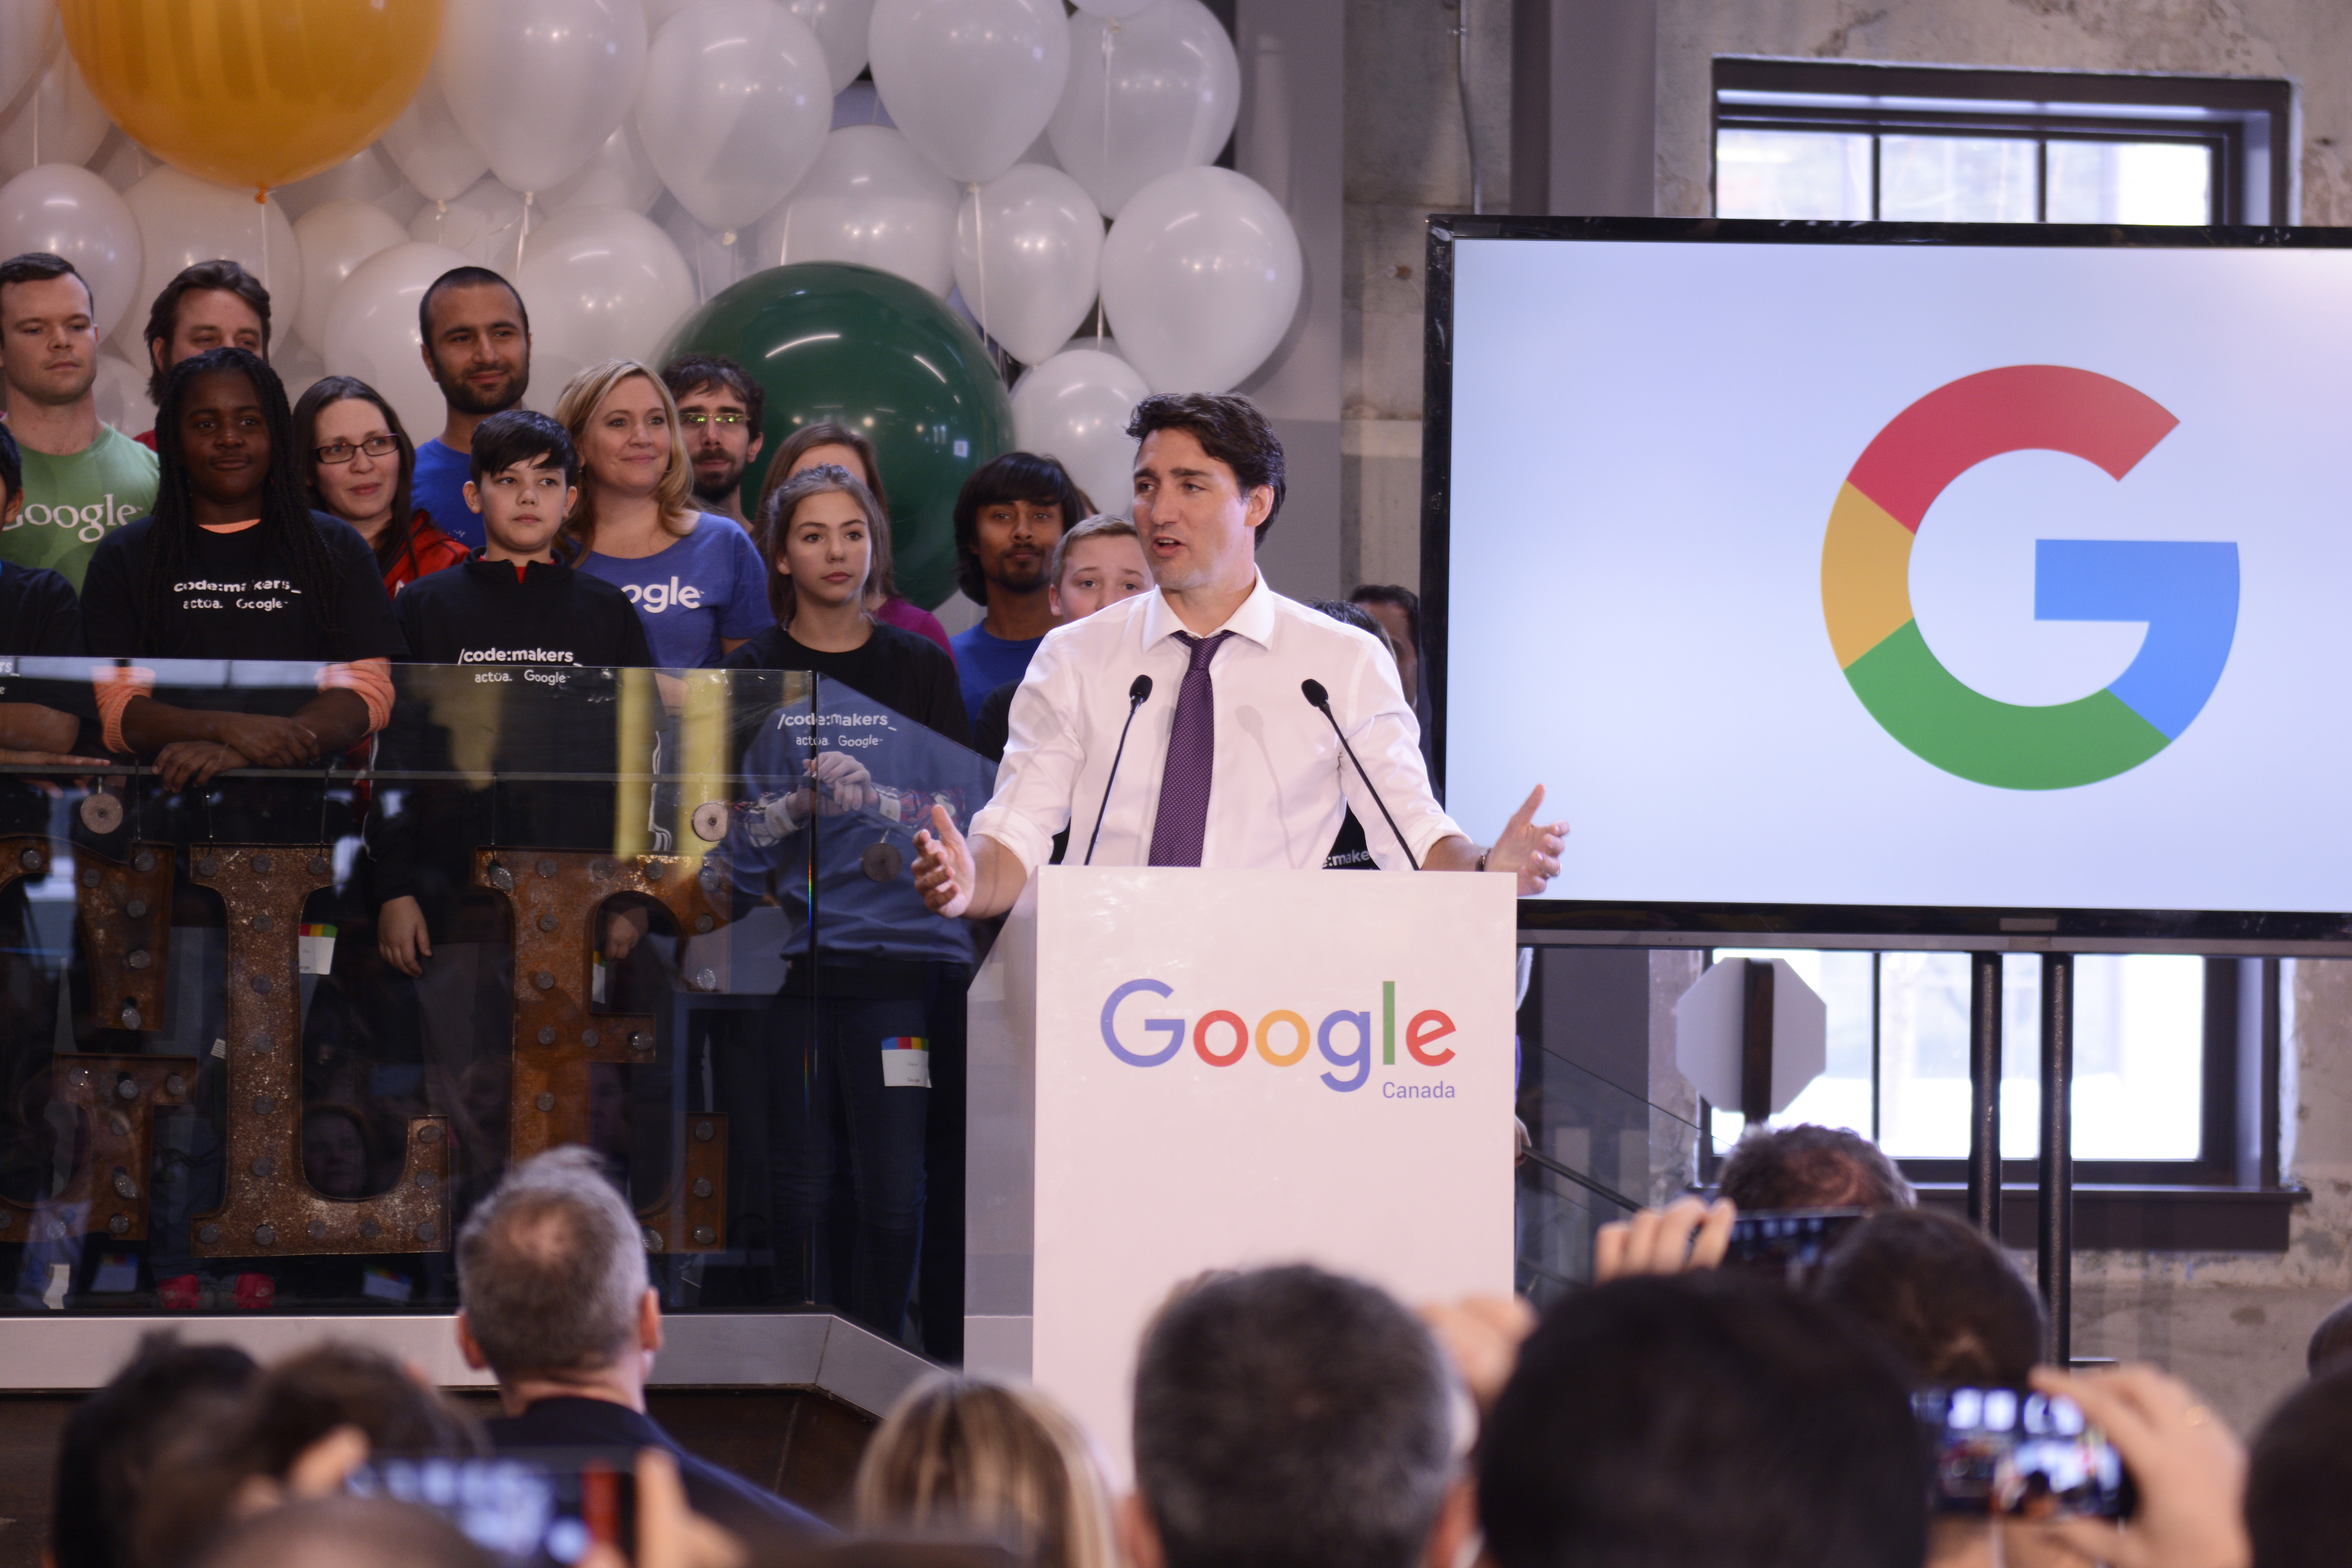 Justin Trudeau also received a tour of Google Canada's new hq in Kitchener on his trip